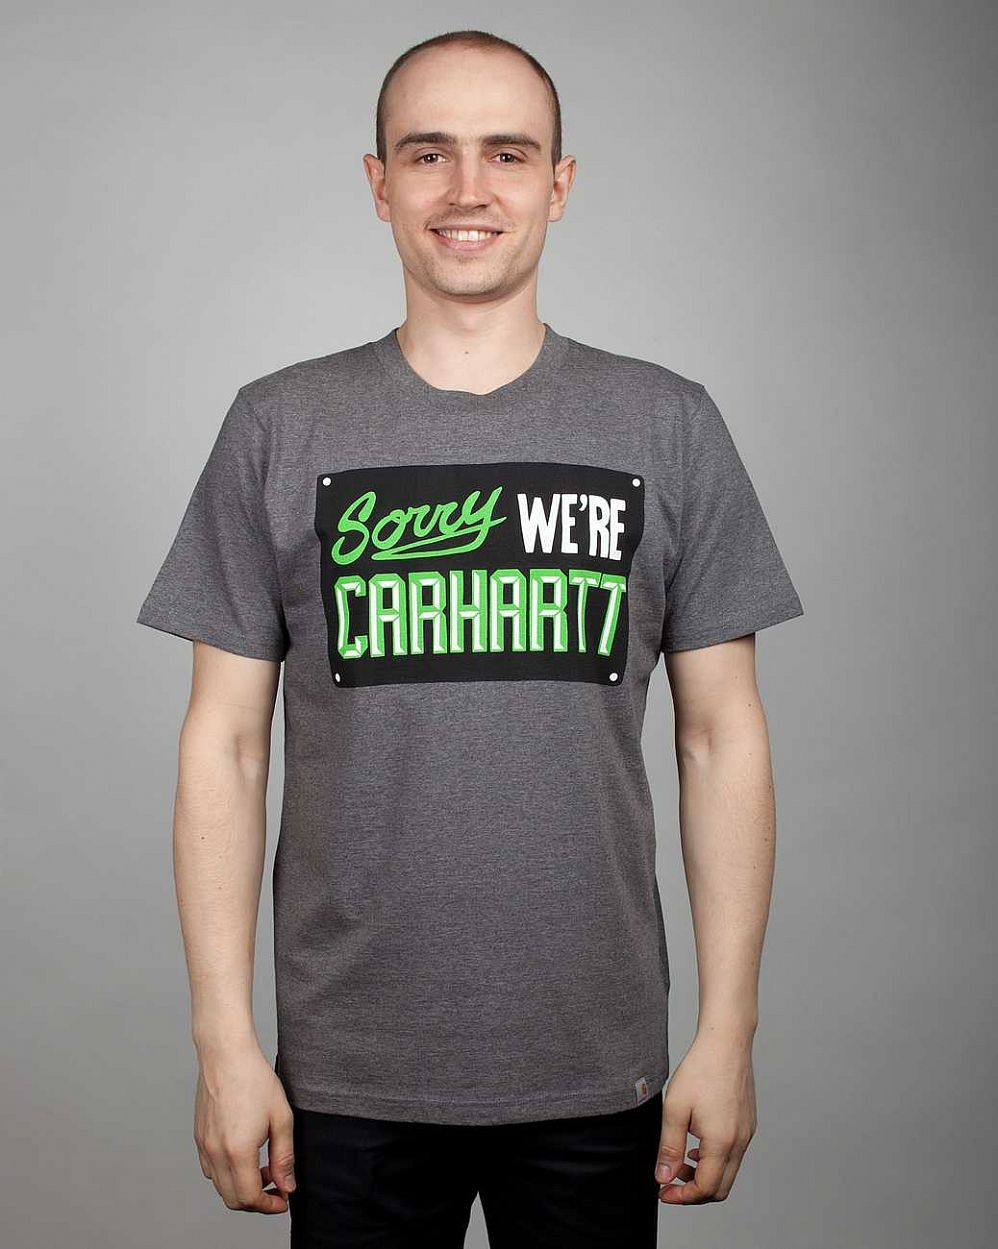 купить Футболка Carhartt S/S Sigh T-shirt Dark Grey Heather Multicolor в Москве